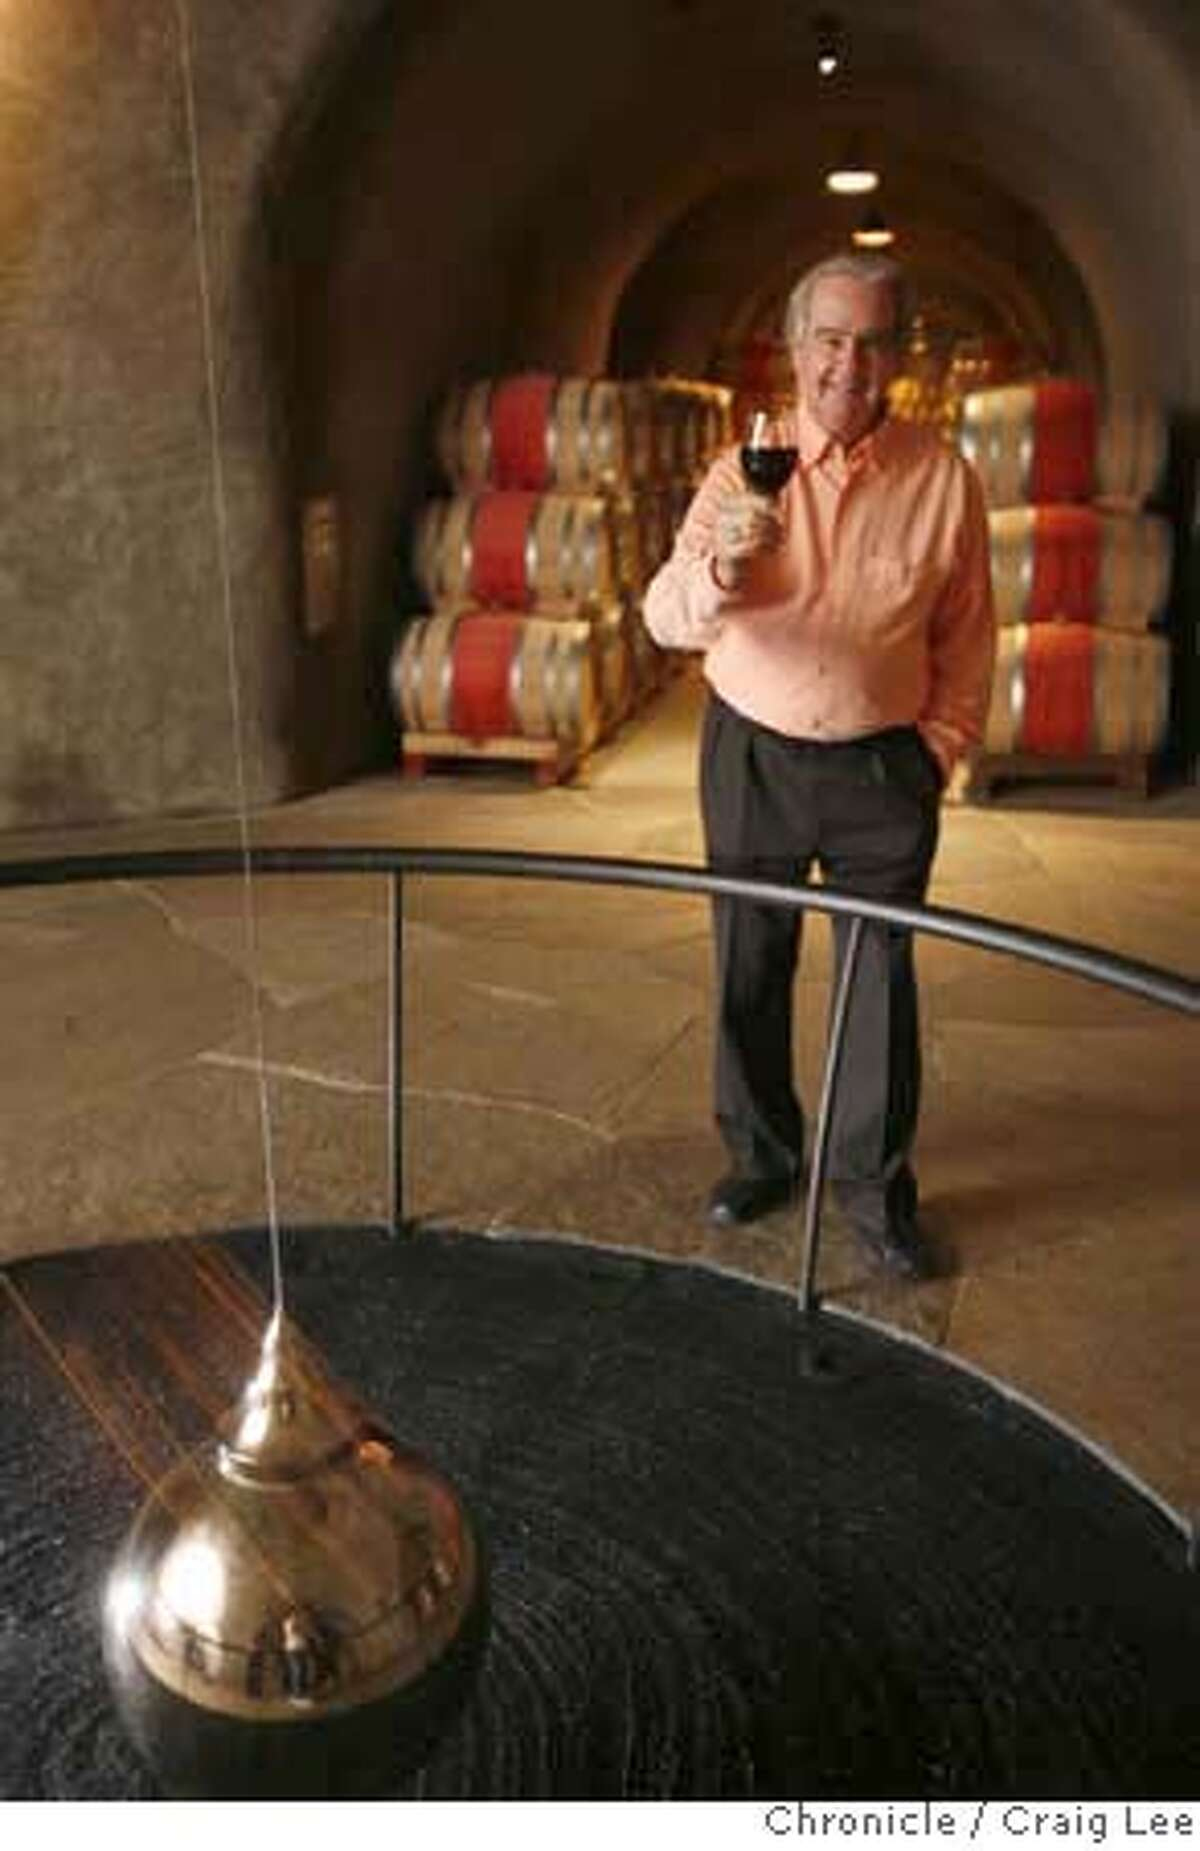 STAGS_174_cl.JPG Warren Winiarski is the founder of Stag's Leap Wine Cellars in Napa. The winery has just been sold to Marchese Pieiro Antinori and Ste. Michelle Wine Estates, a conglomerate. Photo of Warren Winiarski in the pedulum room in the estate wine caves. The pendulum is a metaphor for the passage of time and the aging of wine. Event on 7/31/07 in Napa. photo by Craig Lee / The Chronicle MANDATORY CREDIT FOR PHOTOG AND SF CHRONICLE/NO SALES-MAGS OUT